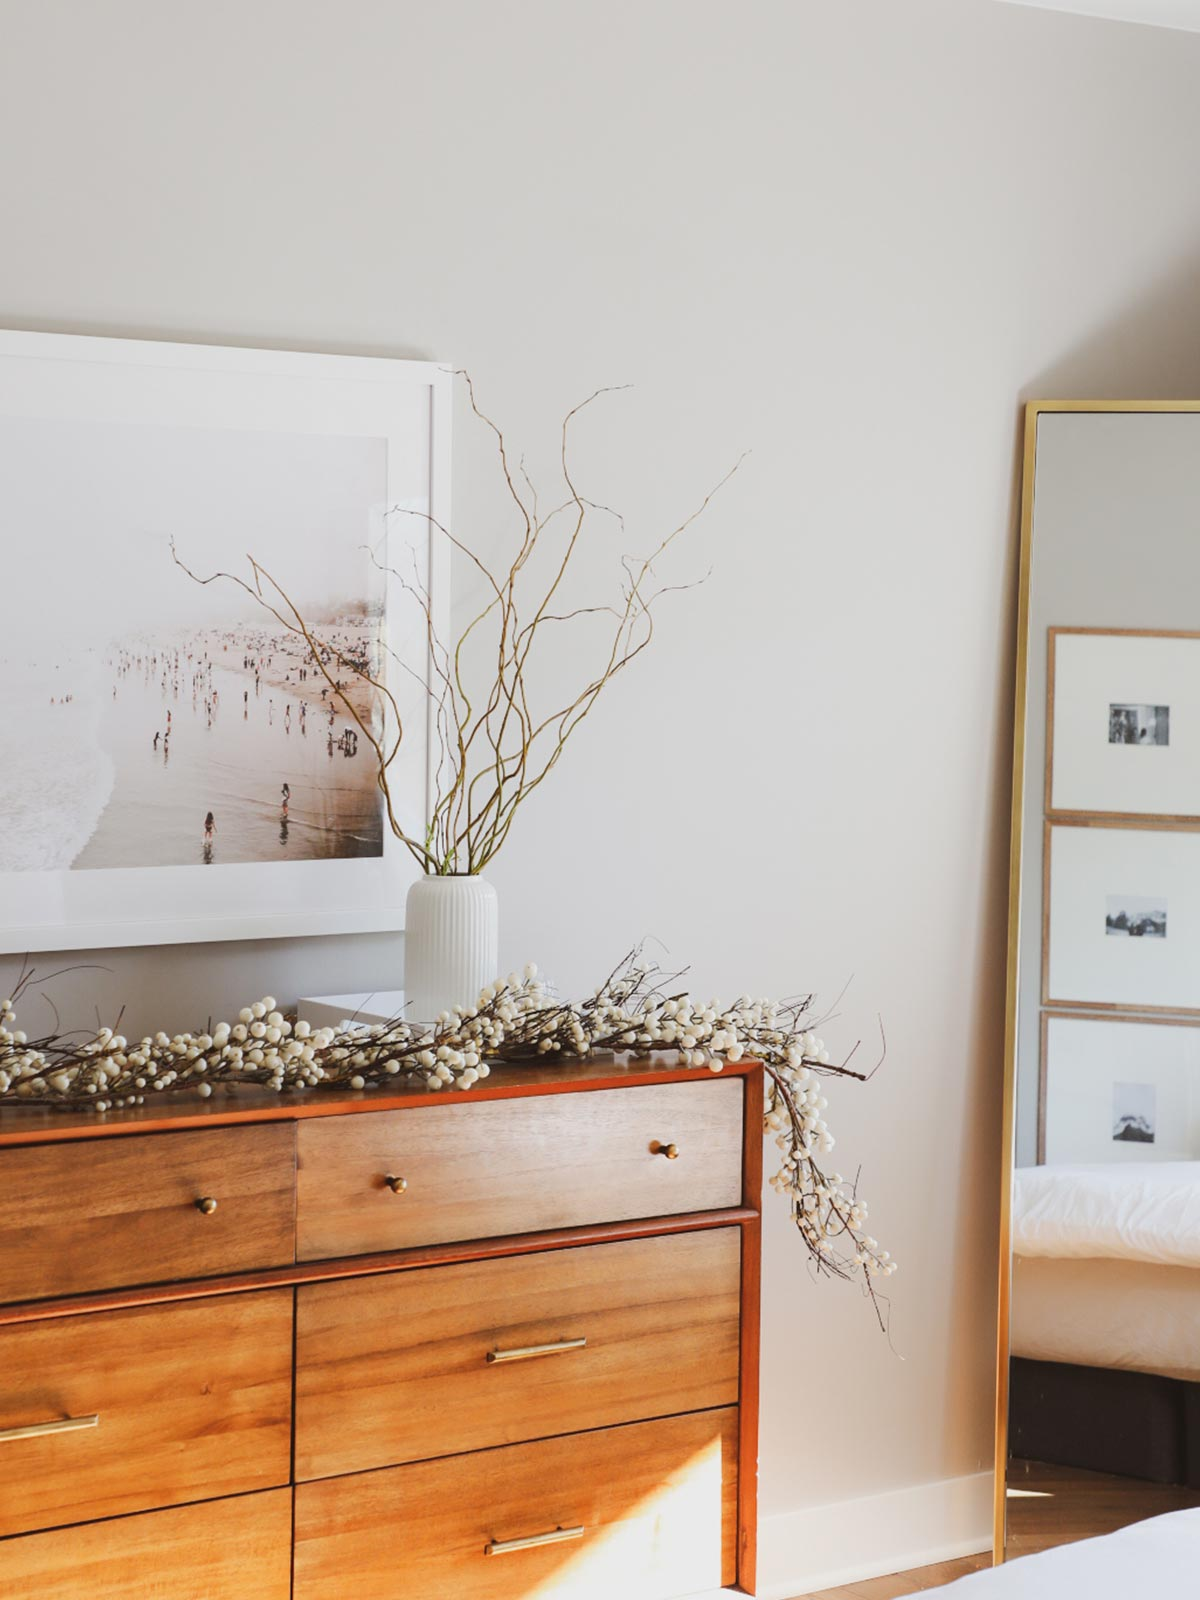 Gallery Frame featuring photo of the beach on bedroom wall above dresser with dried branches in vase.